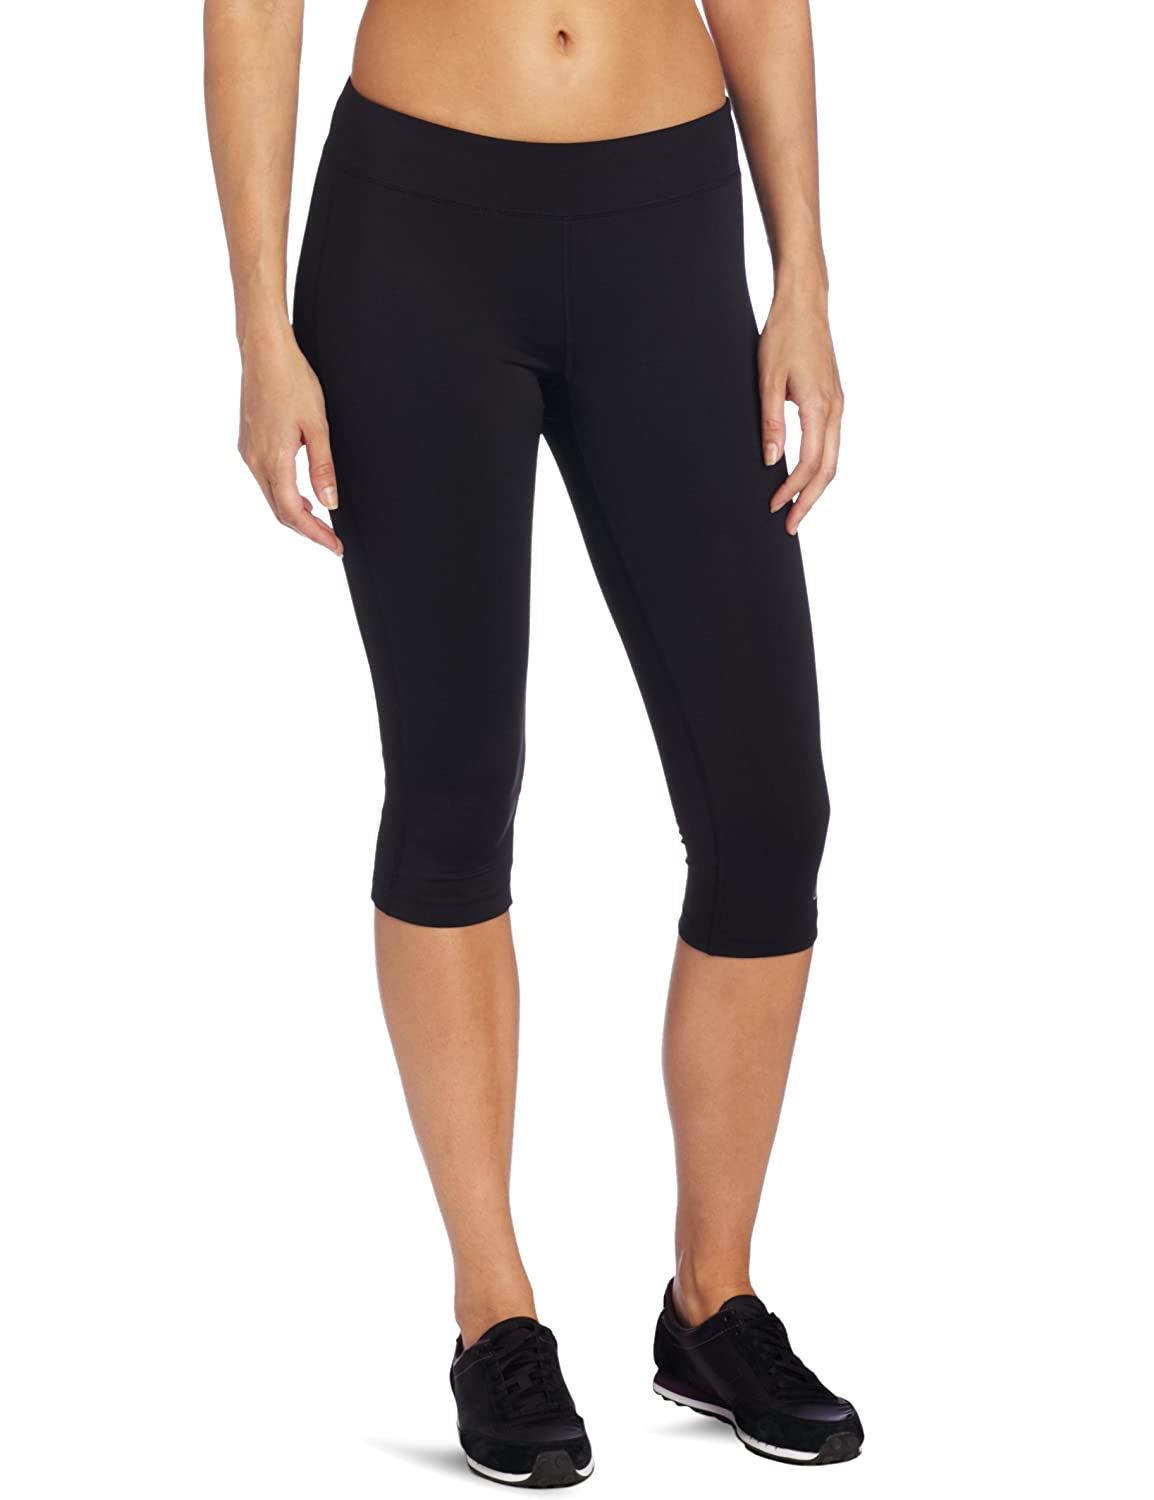 Champion Women's Absolute Workout Capri Legging at Amazon Women's ...